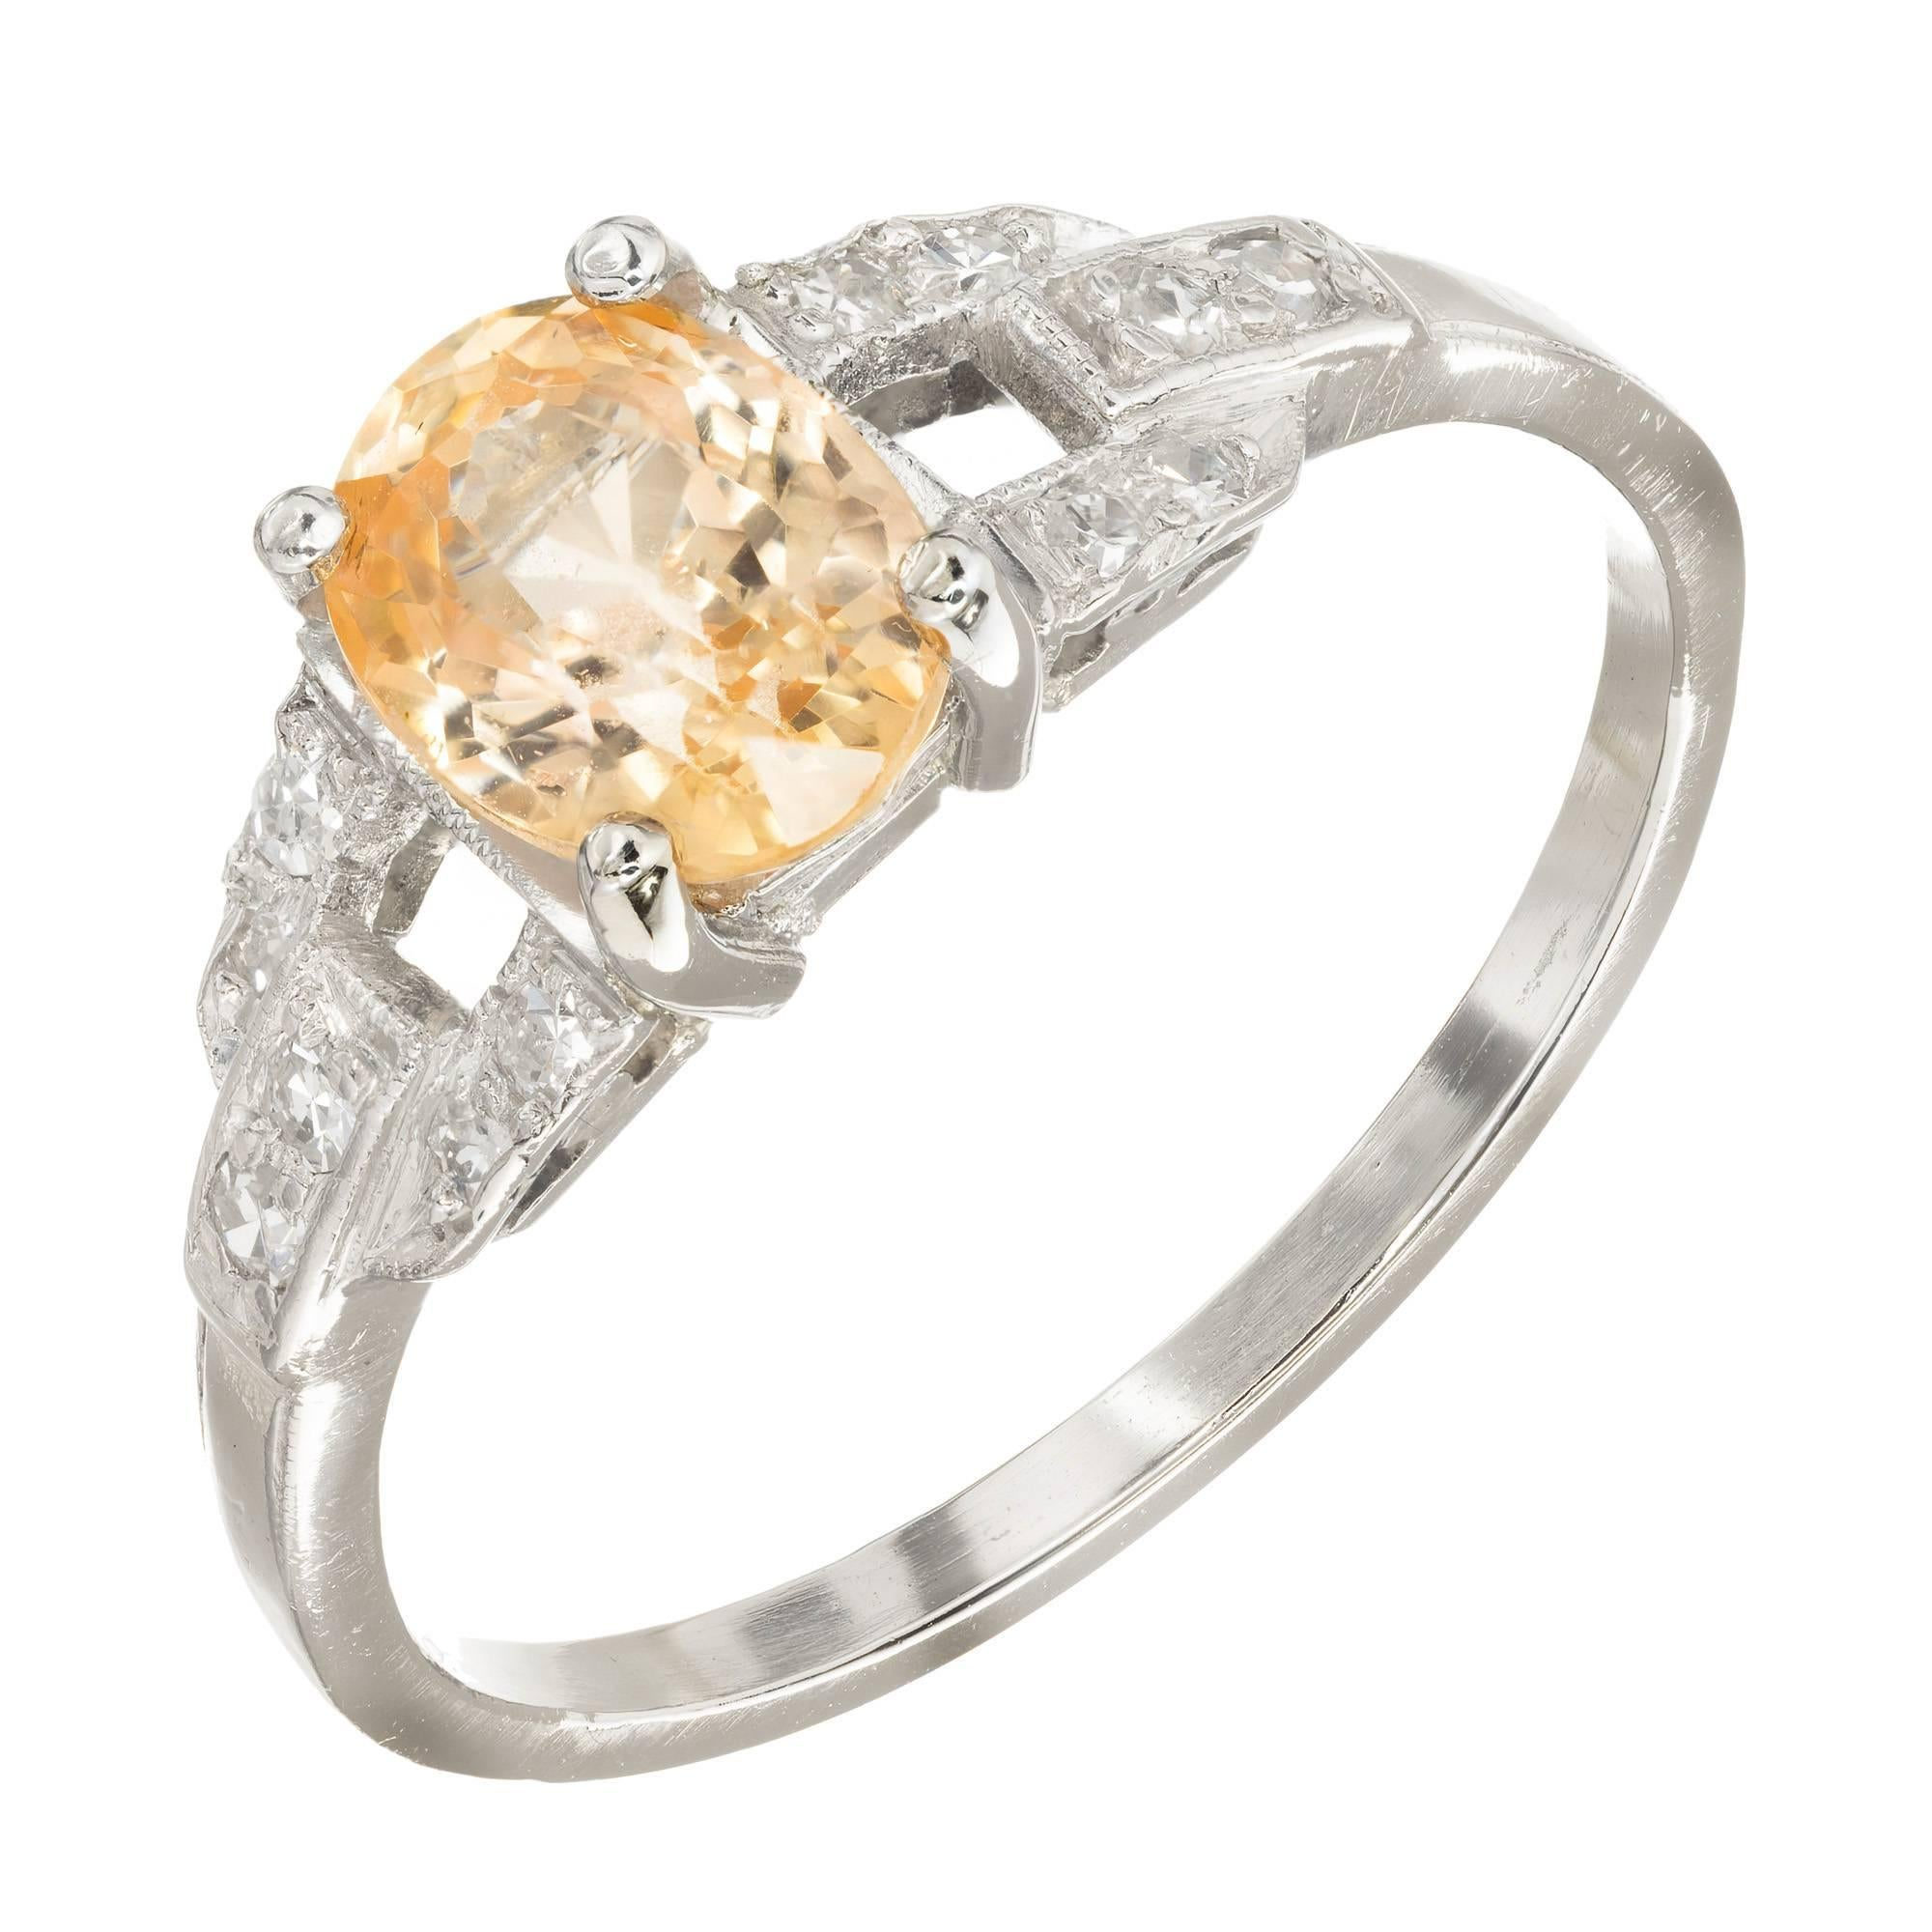 1.21 Carat Natural Yellow Orange Sapphire Diamond Platinum Engagement Ring